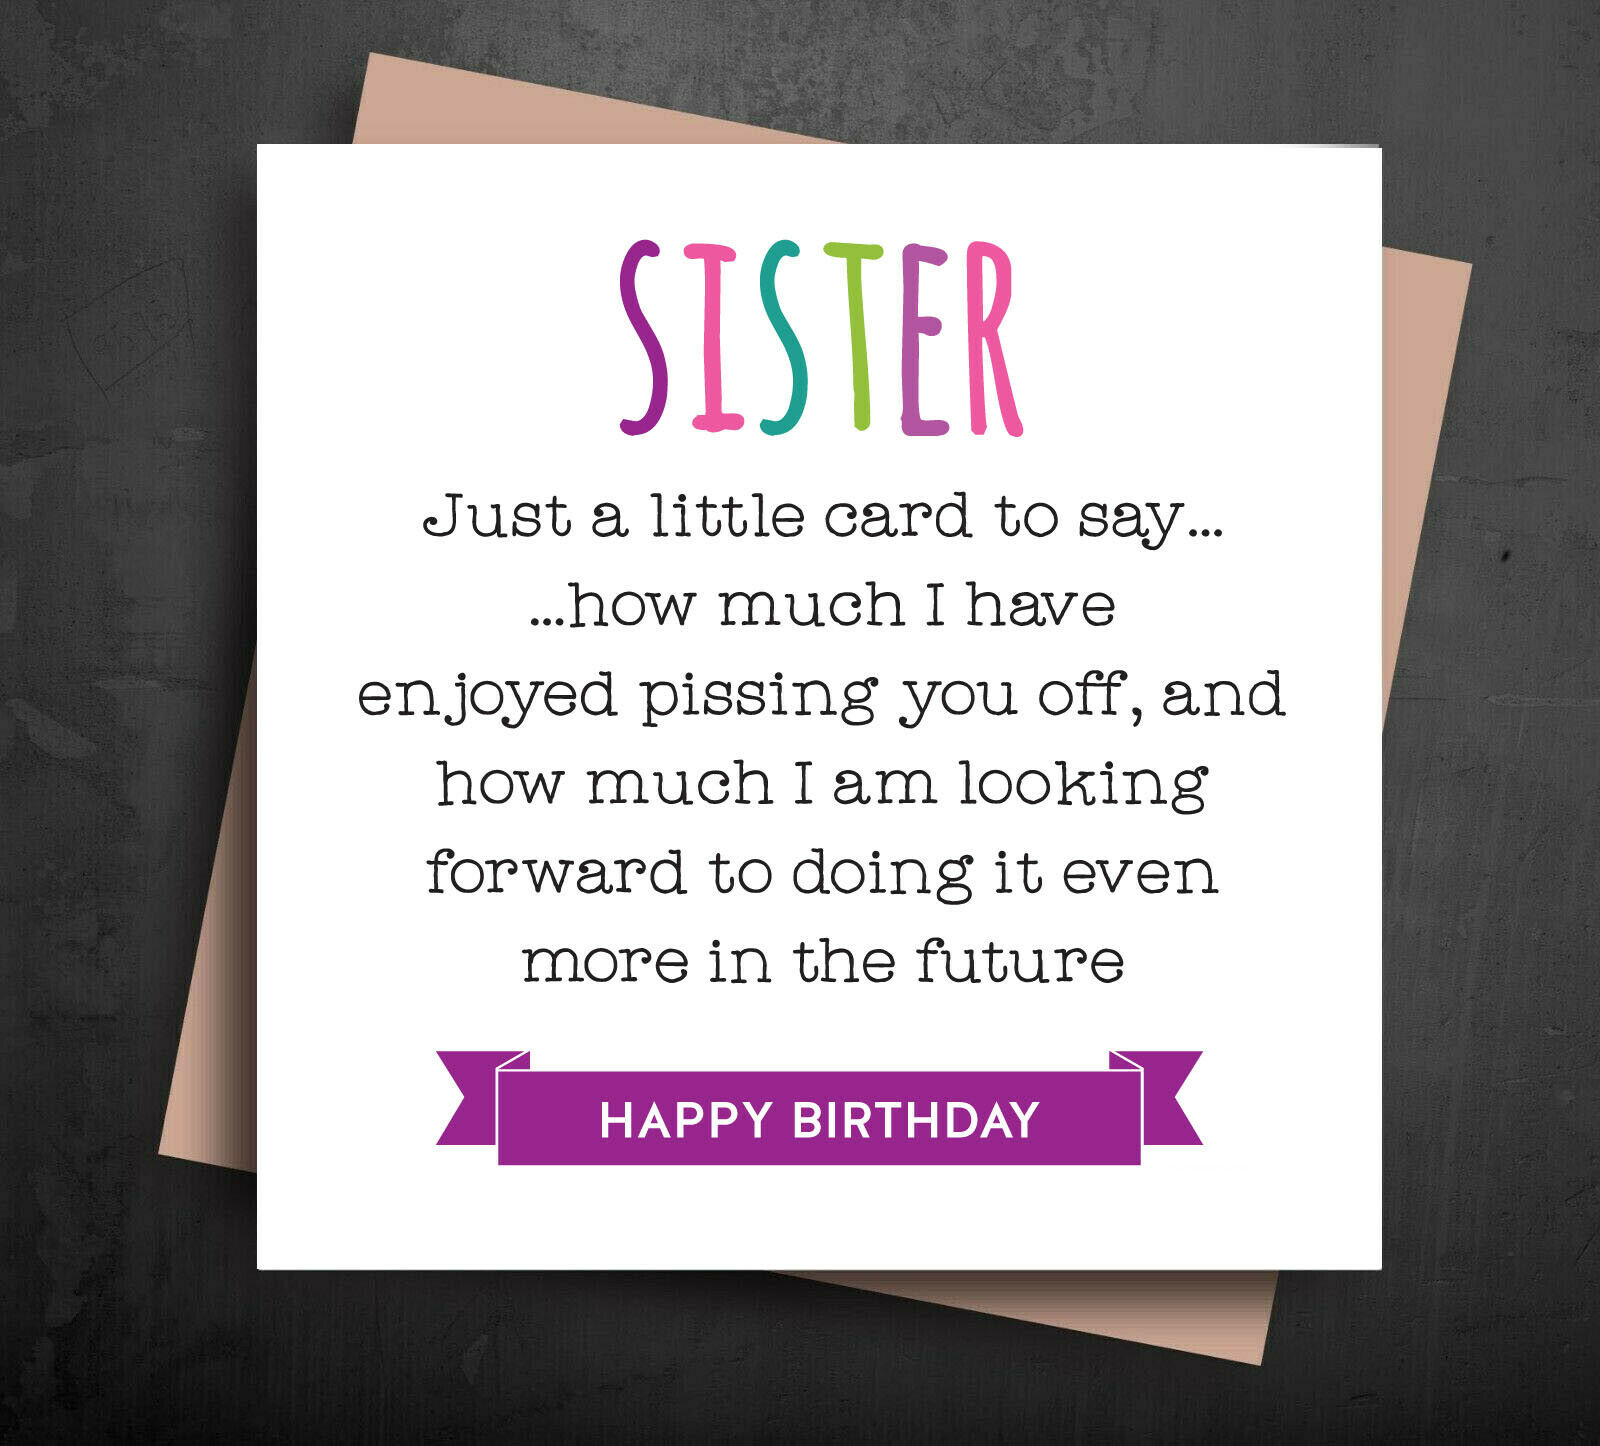 Funny Birthday Card For Sister From Brother Naughty Rude Pssing